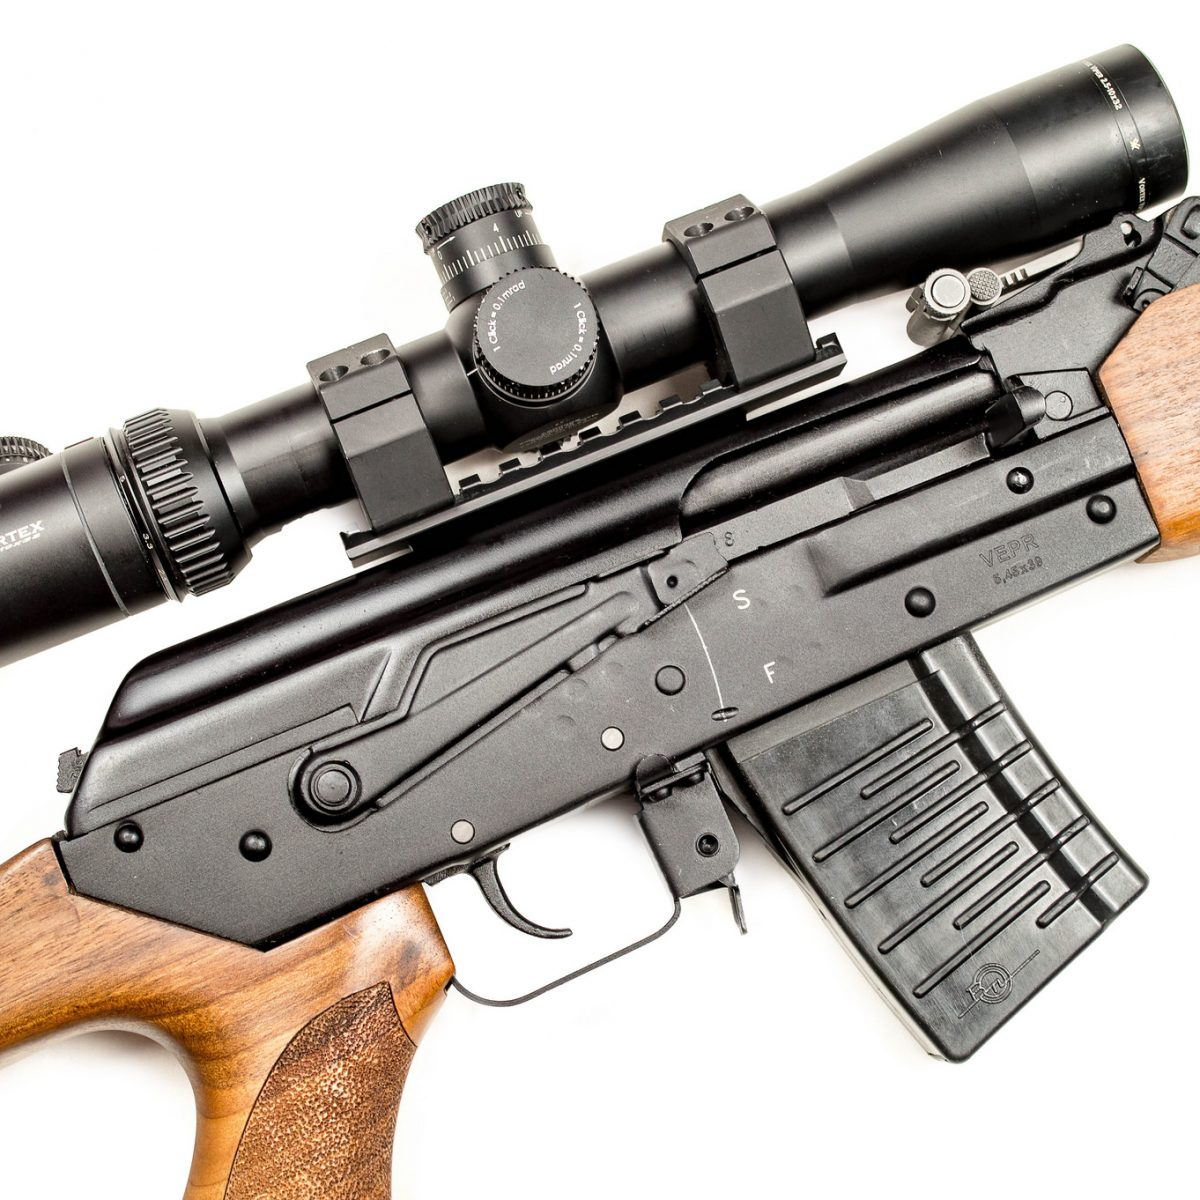 VEPR-with-AK-303M-lower-and-AKR-upper-2-1200×1200